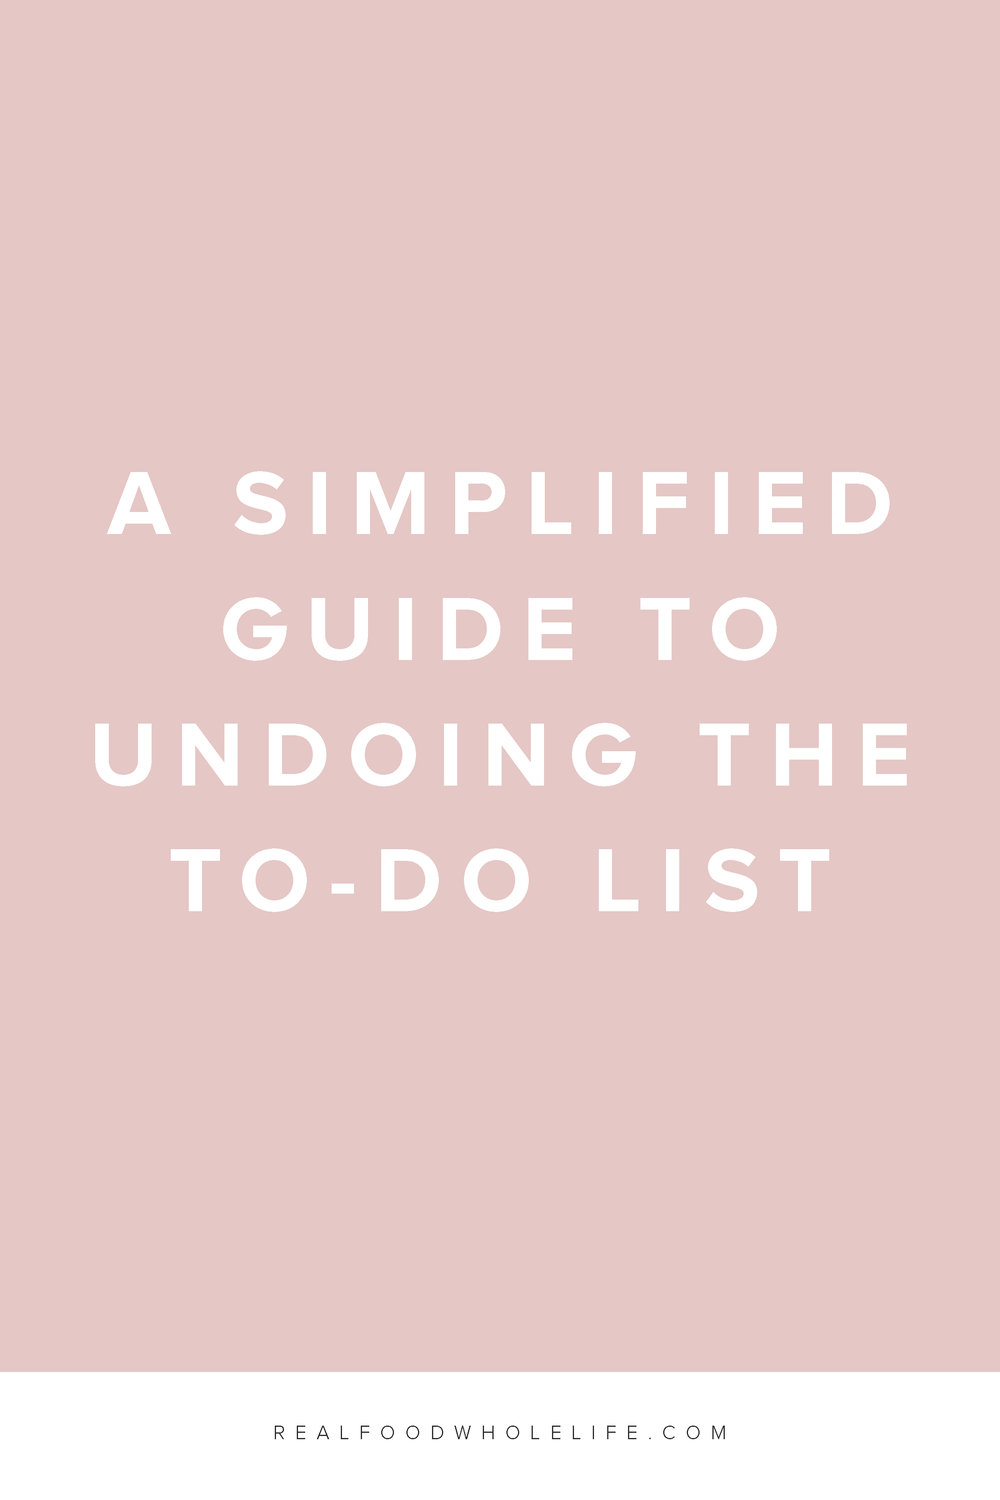 A Quick Guide to Undoing the To-Do List. Read on for more on doing less to feel more. #realfoodwholelife #wellness #balance #healthylife